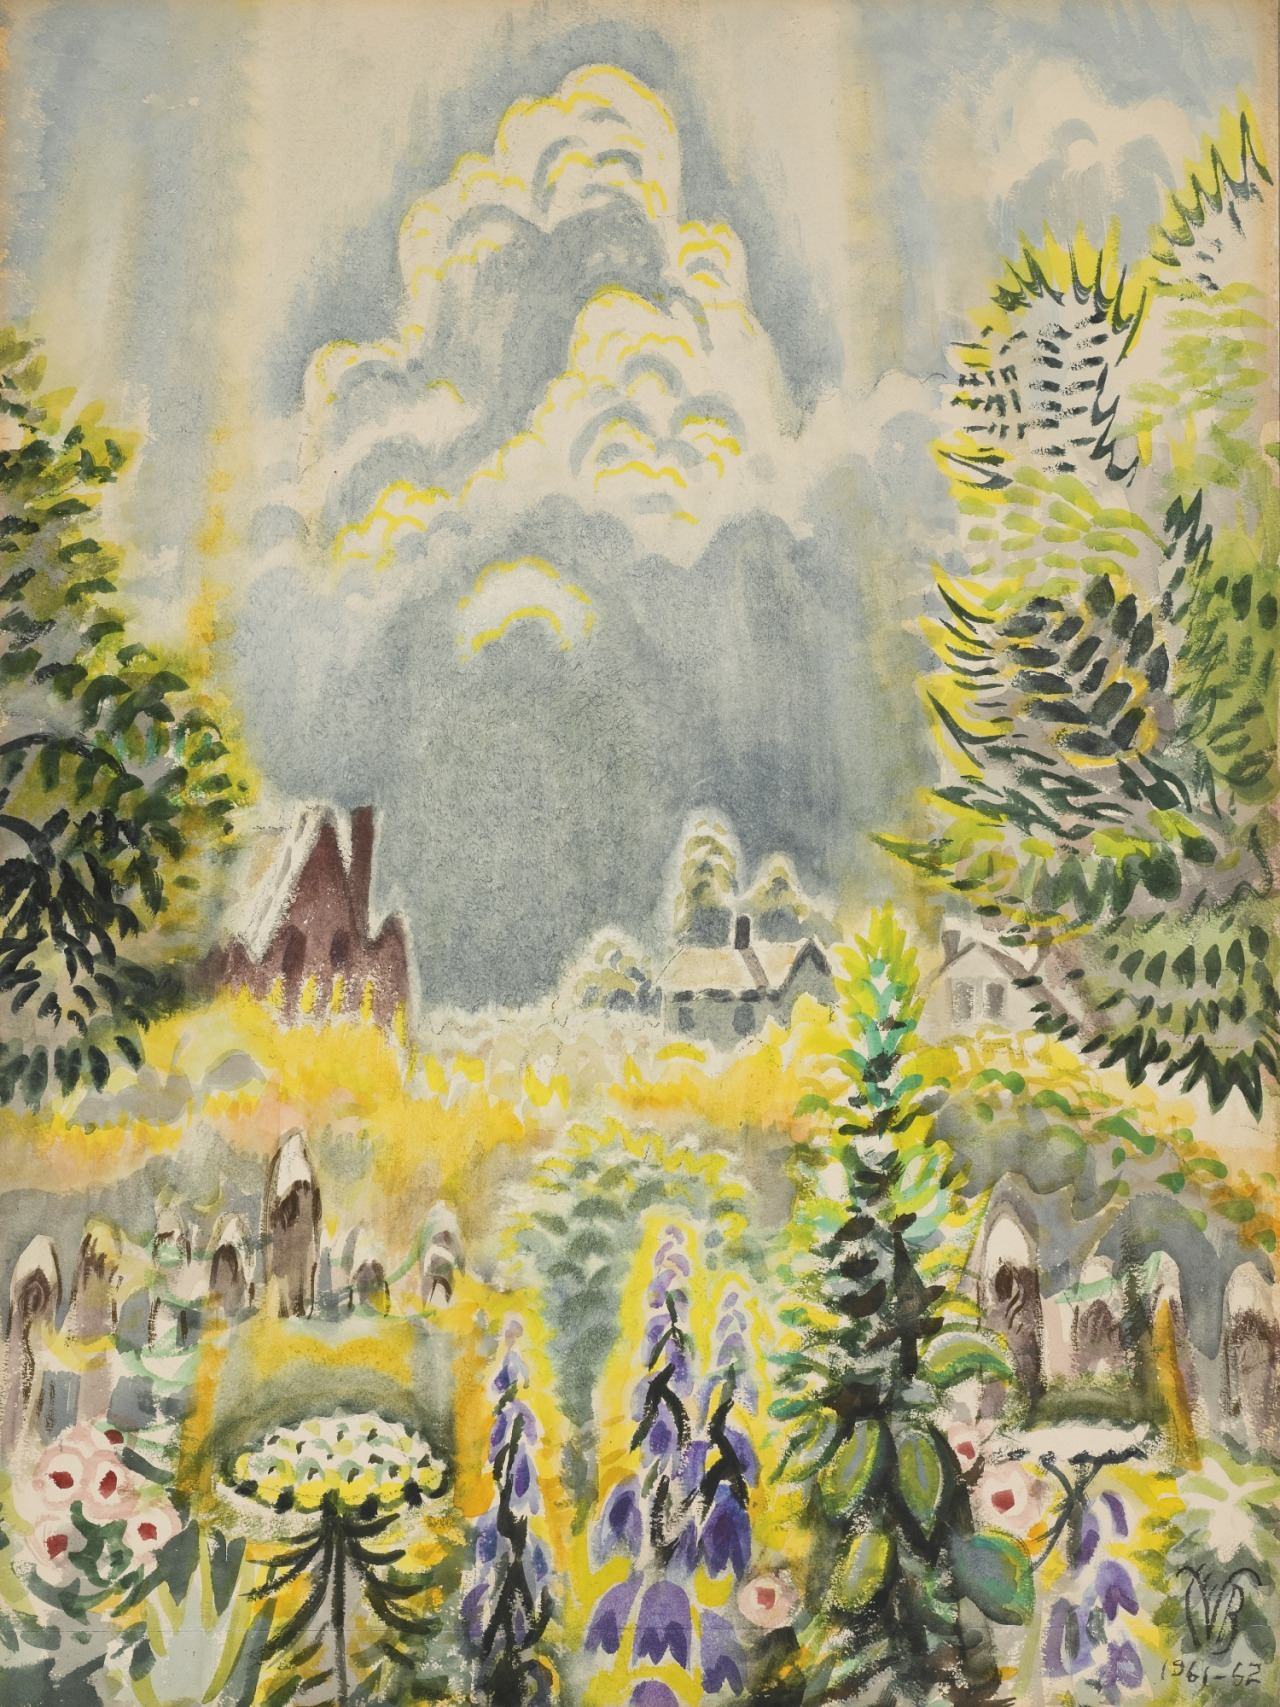 thunderstruck9:  Charles Burchfield (American, 1893-1967), Flower Garden and Pillar of Cloud, 1961-62. Watercolor on paper, 40 x 30 in.